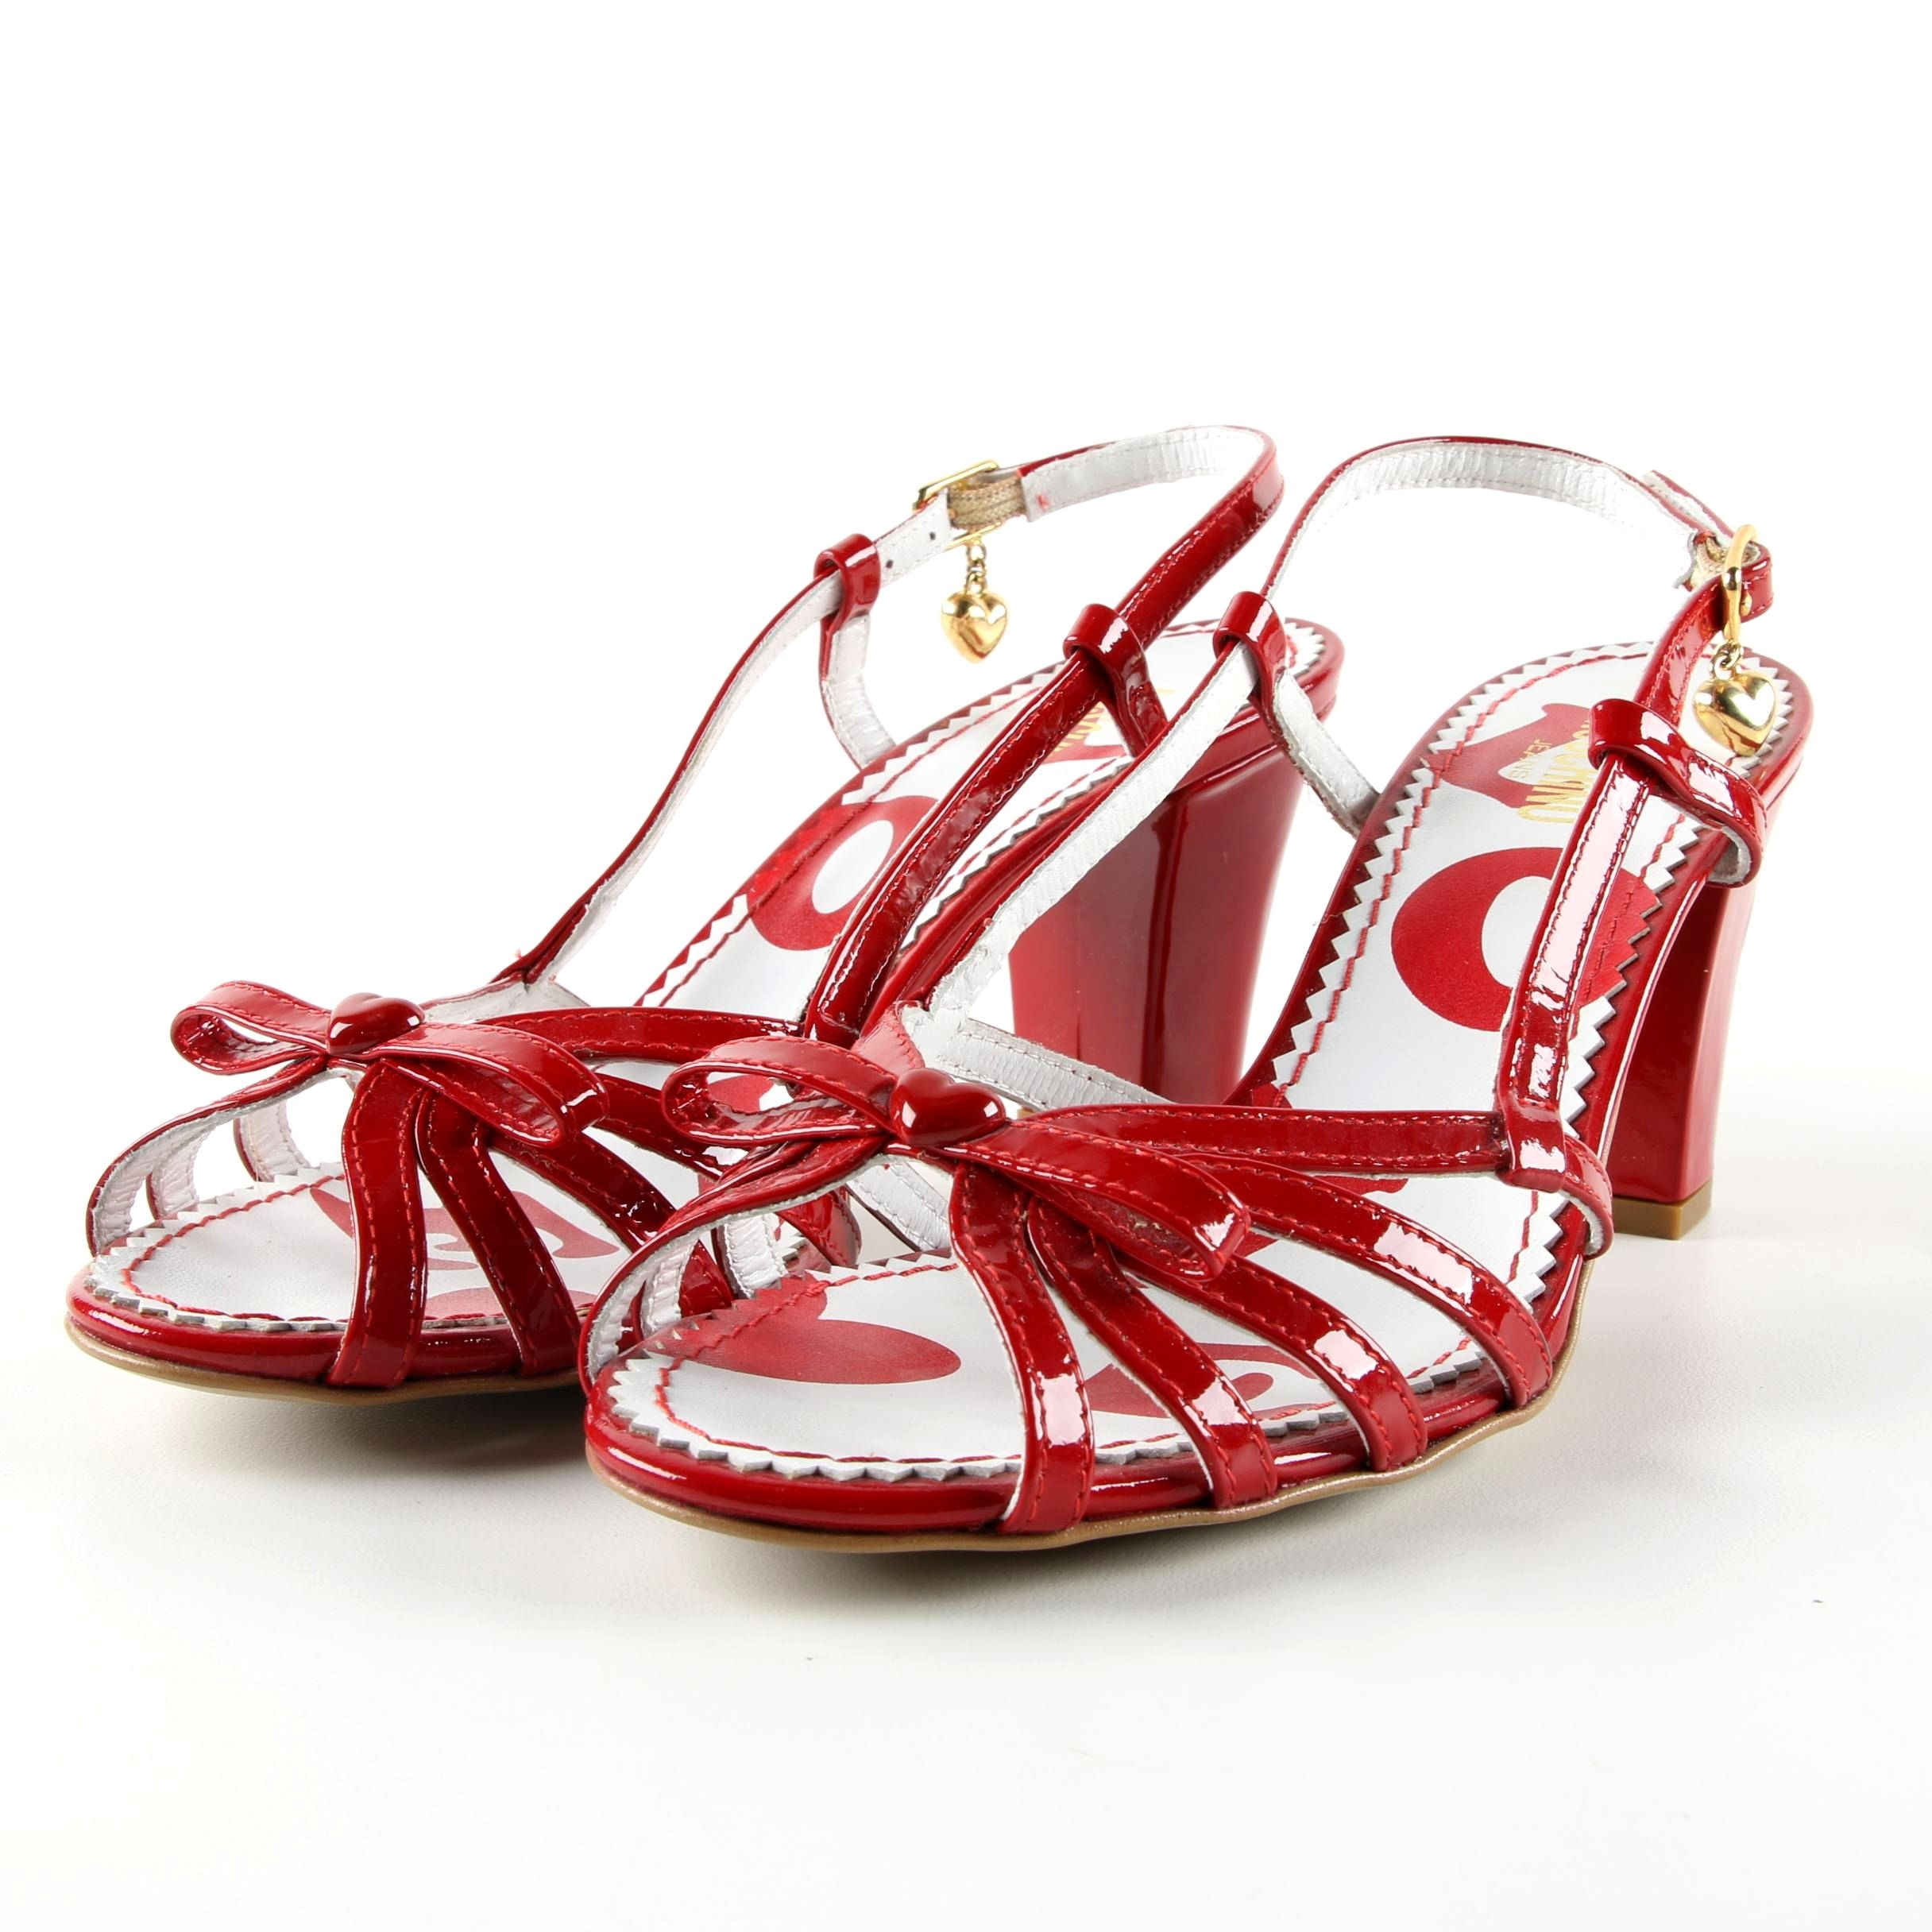 Moschino Jeans Red Patent Leather High-Heeled Dress Sandals